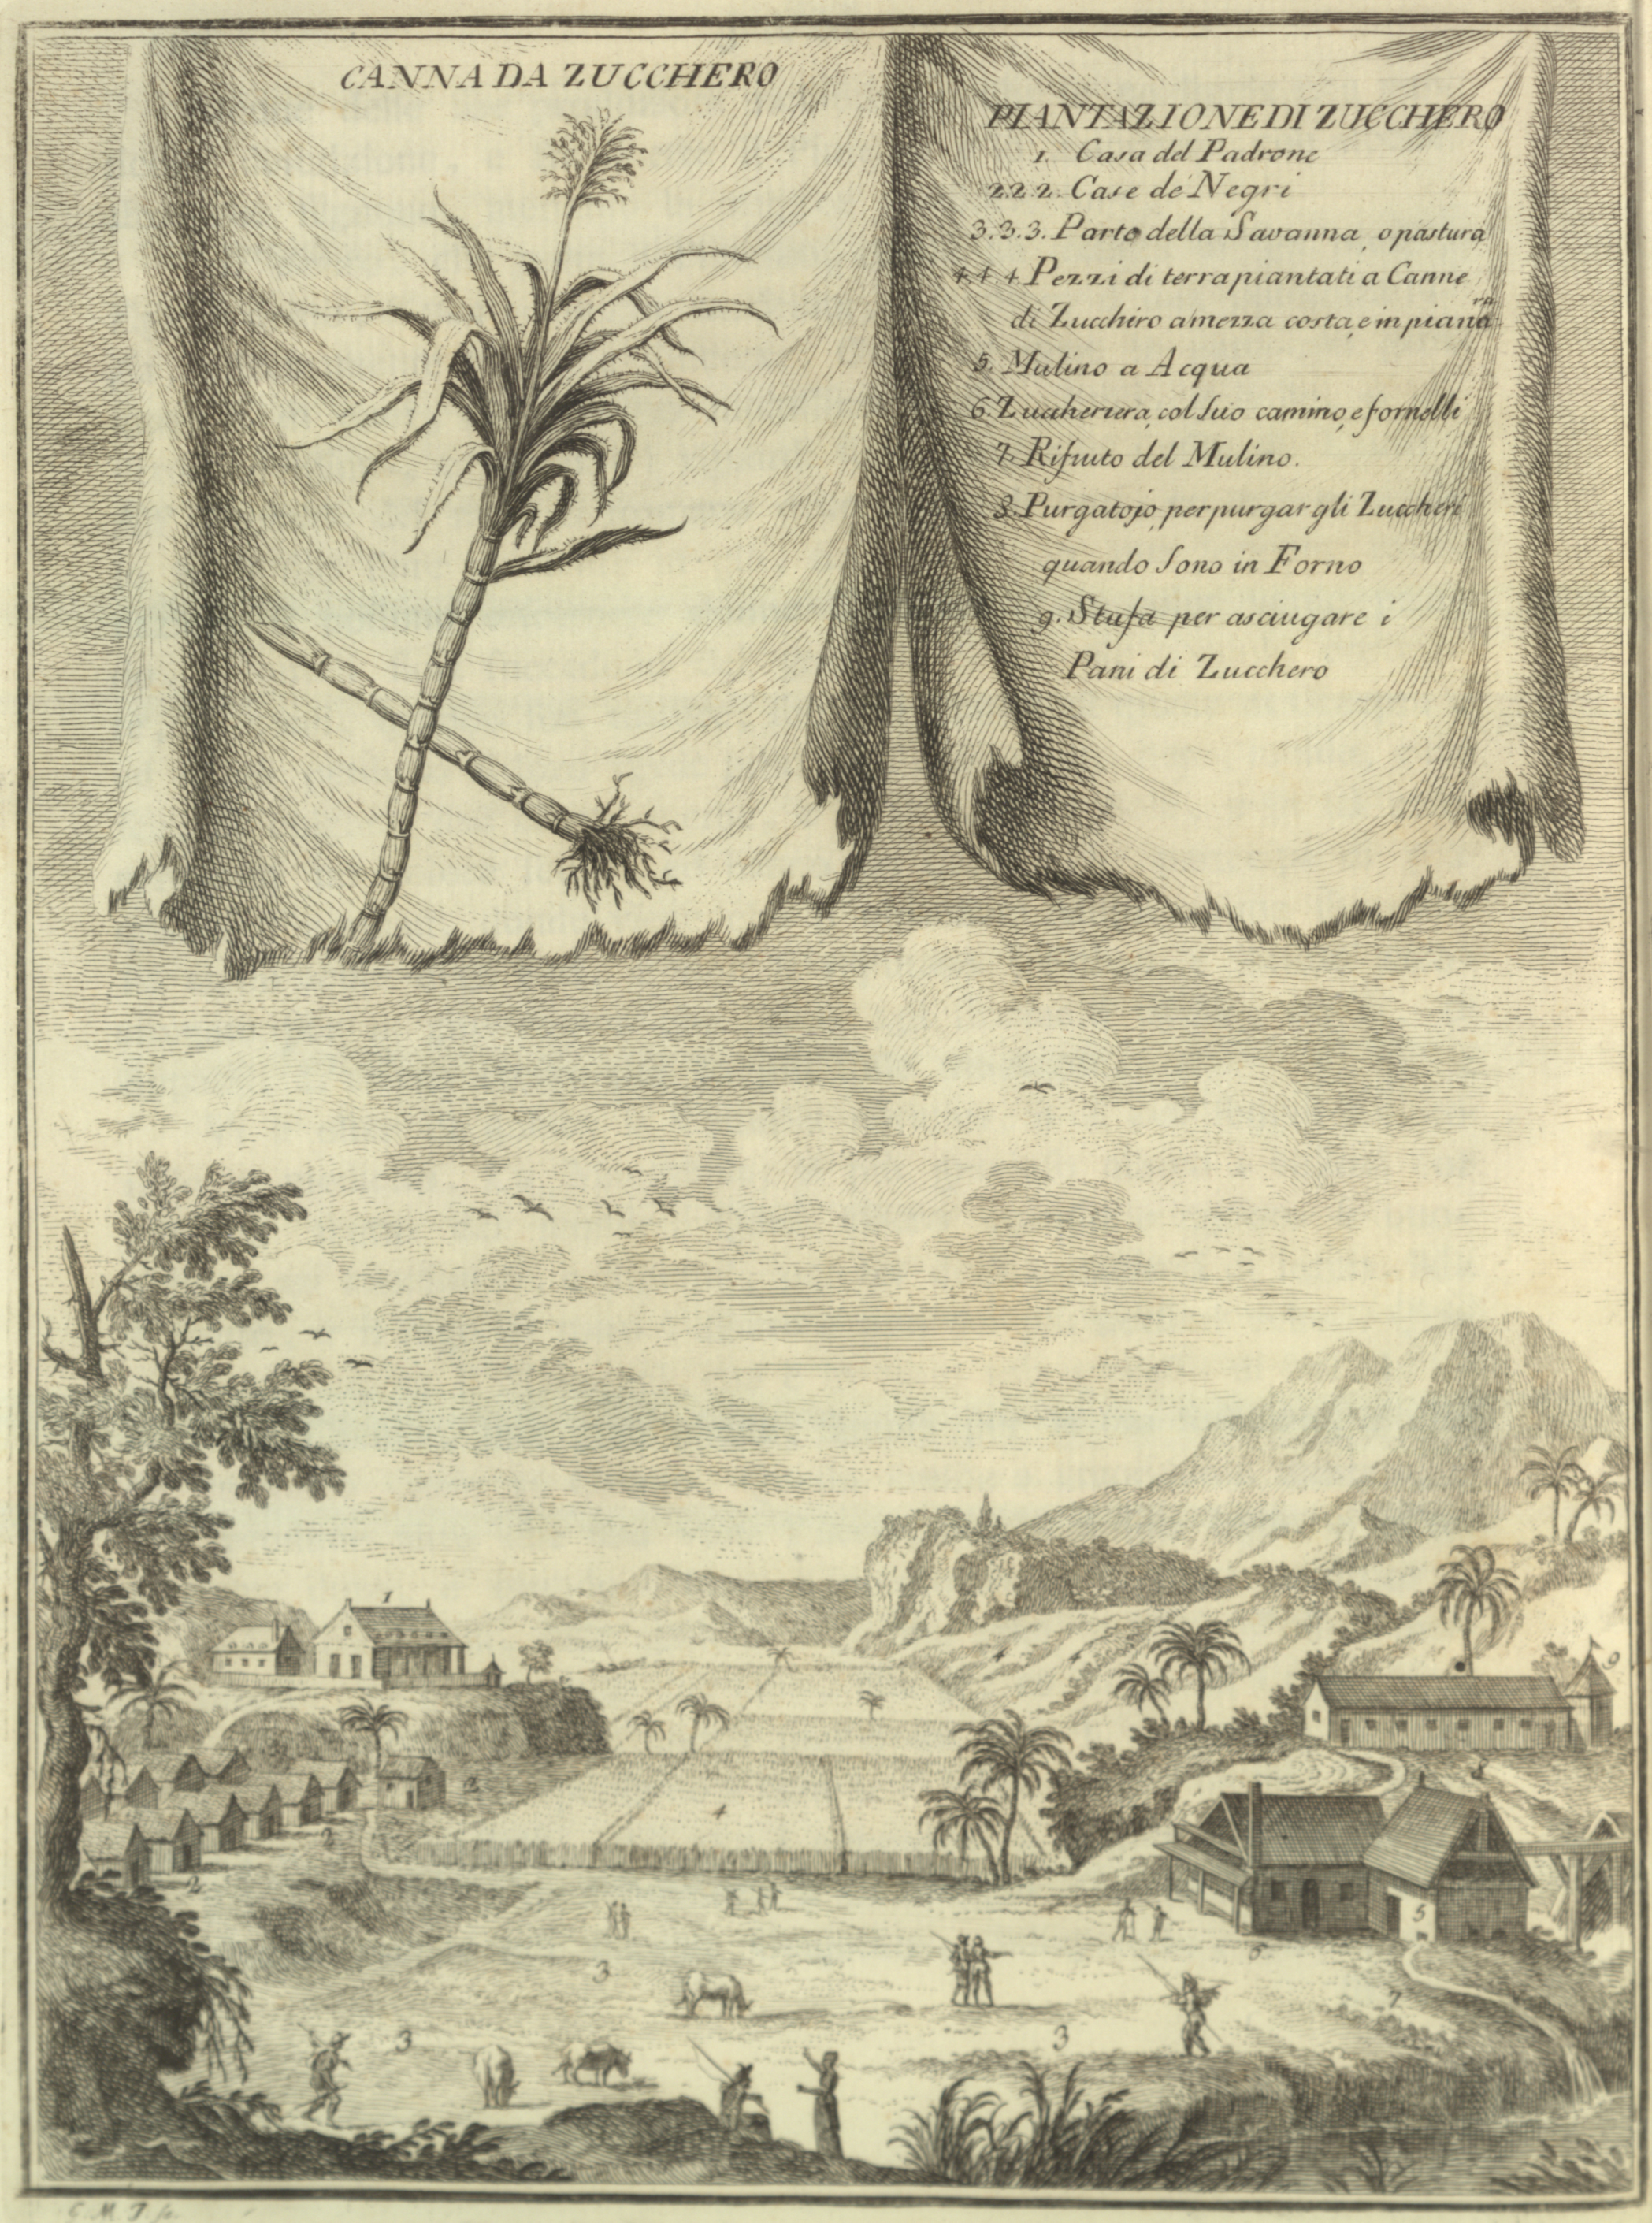 Drawing of a sugar plantation